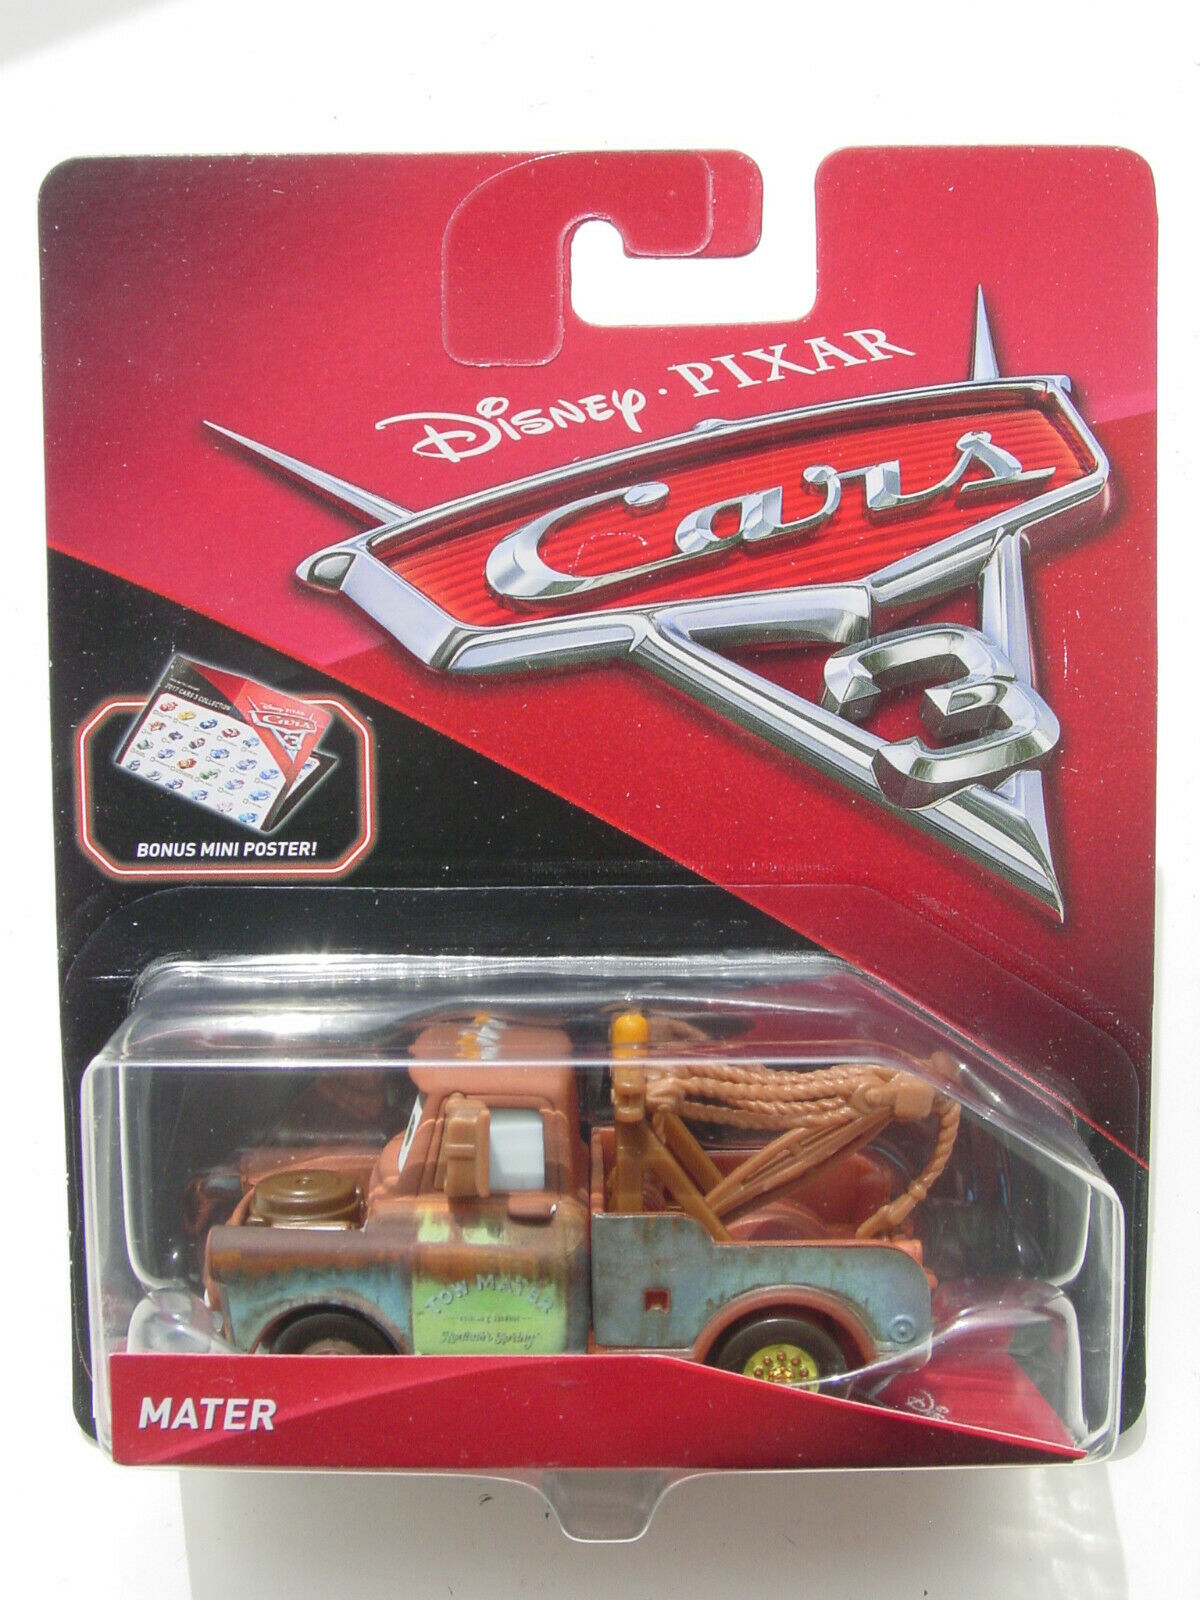 Disney//Pixar Cars Mater/'s Towing and Salvage Playset and Vehicle New SEALED